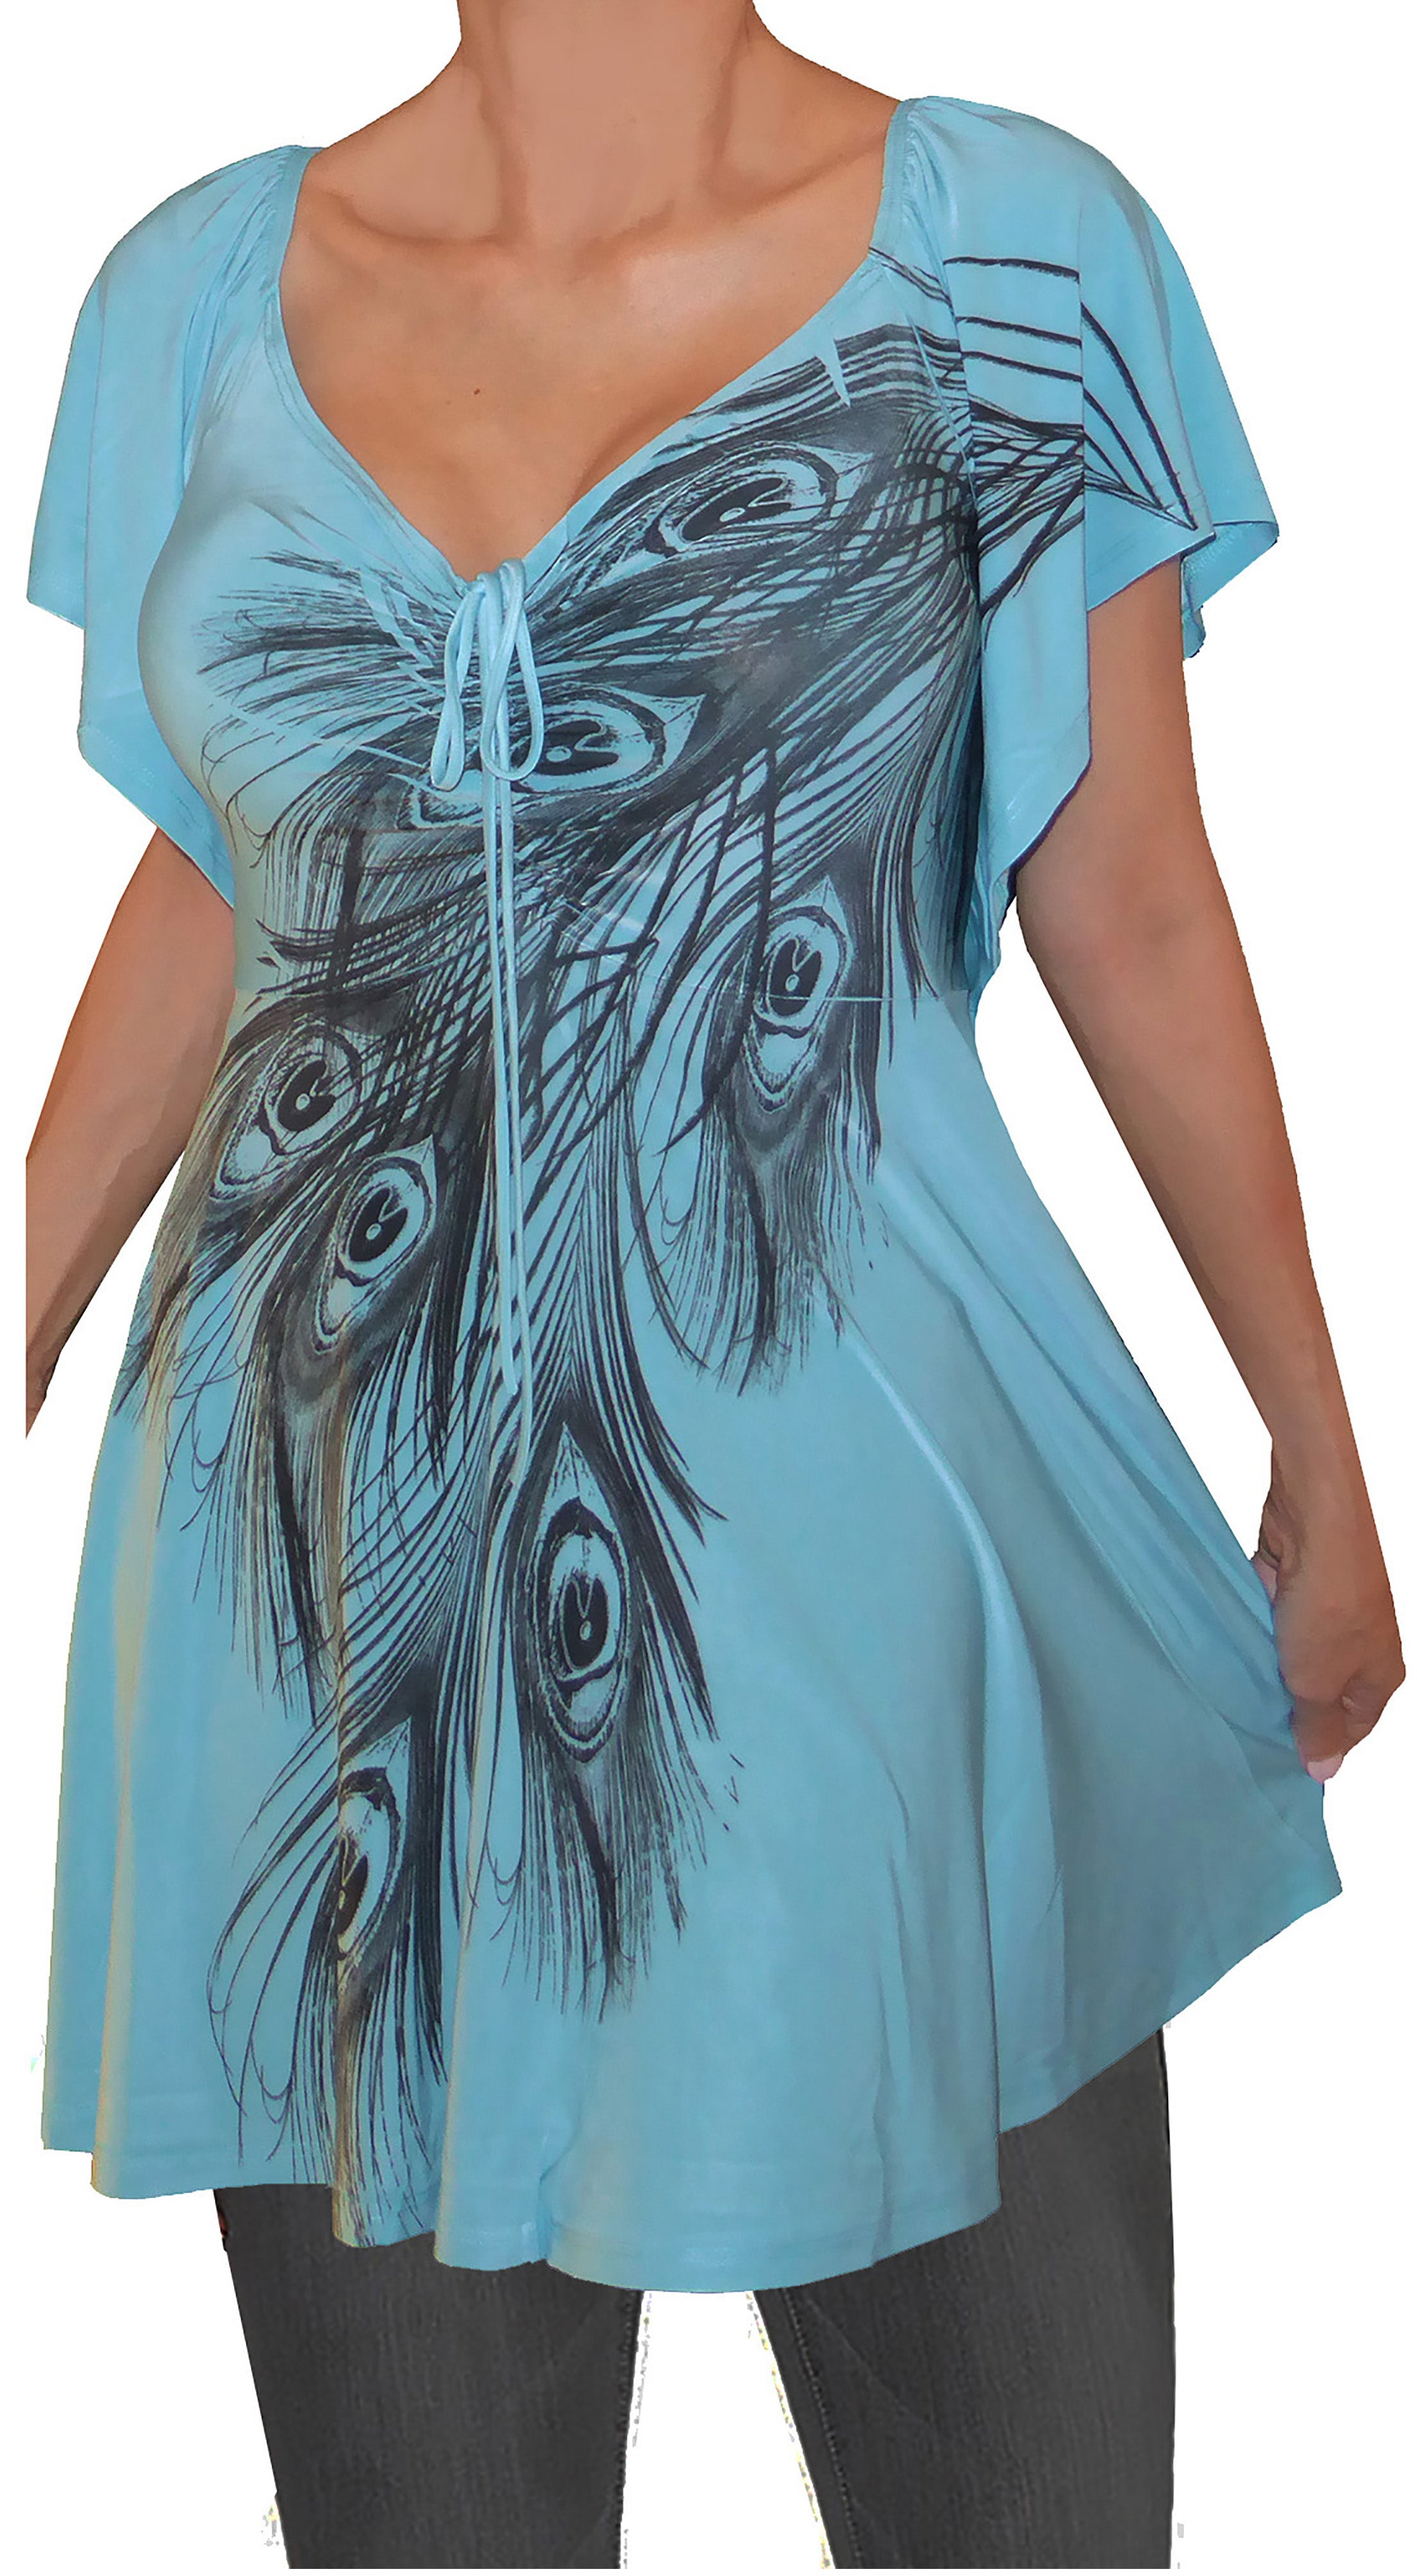 c7caf074a5e4 Funfash Plus Size Women Empire Waist Blue Peacock Top Shirt Blouse Made in  USA